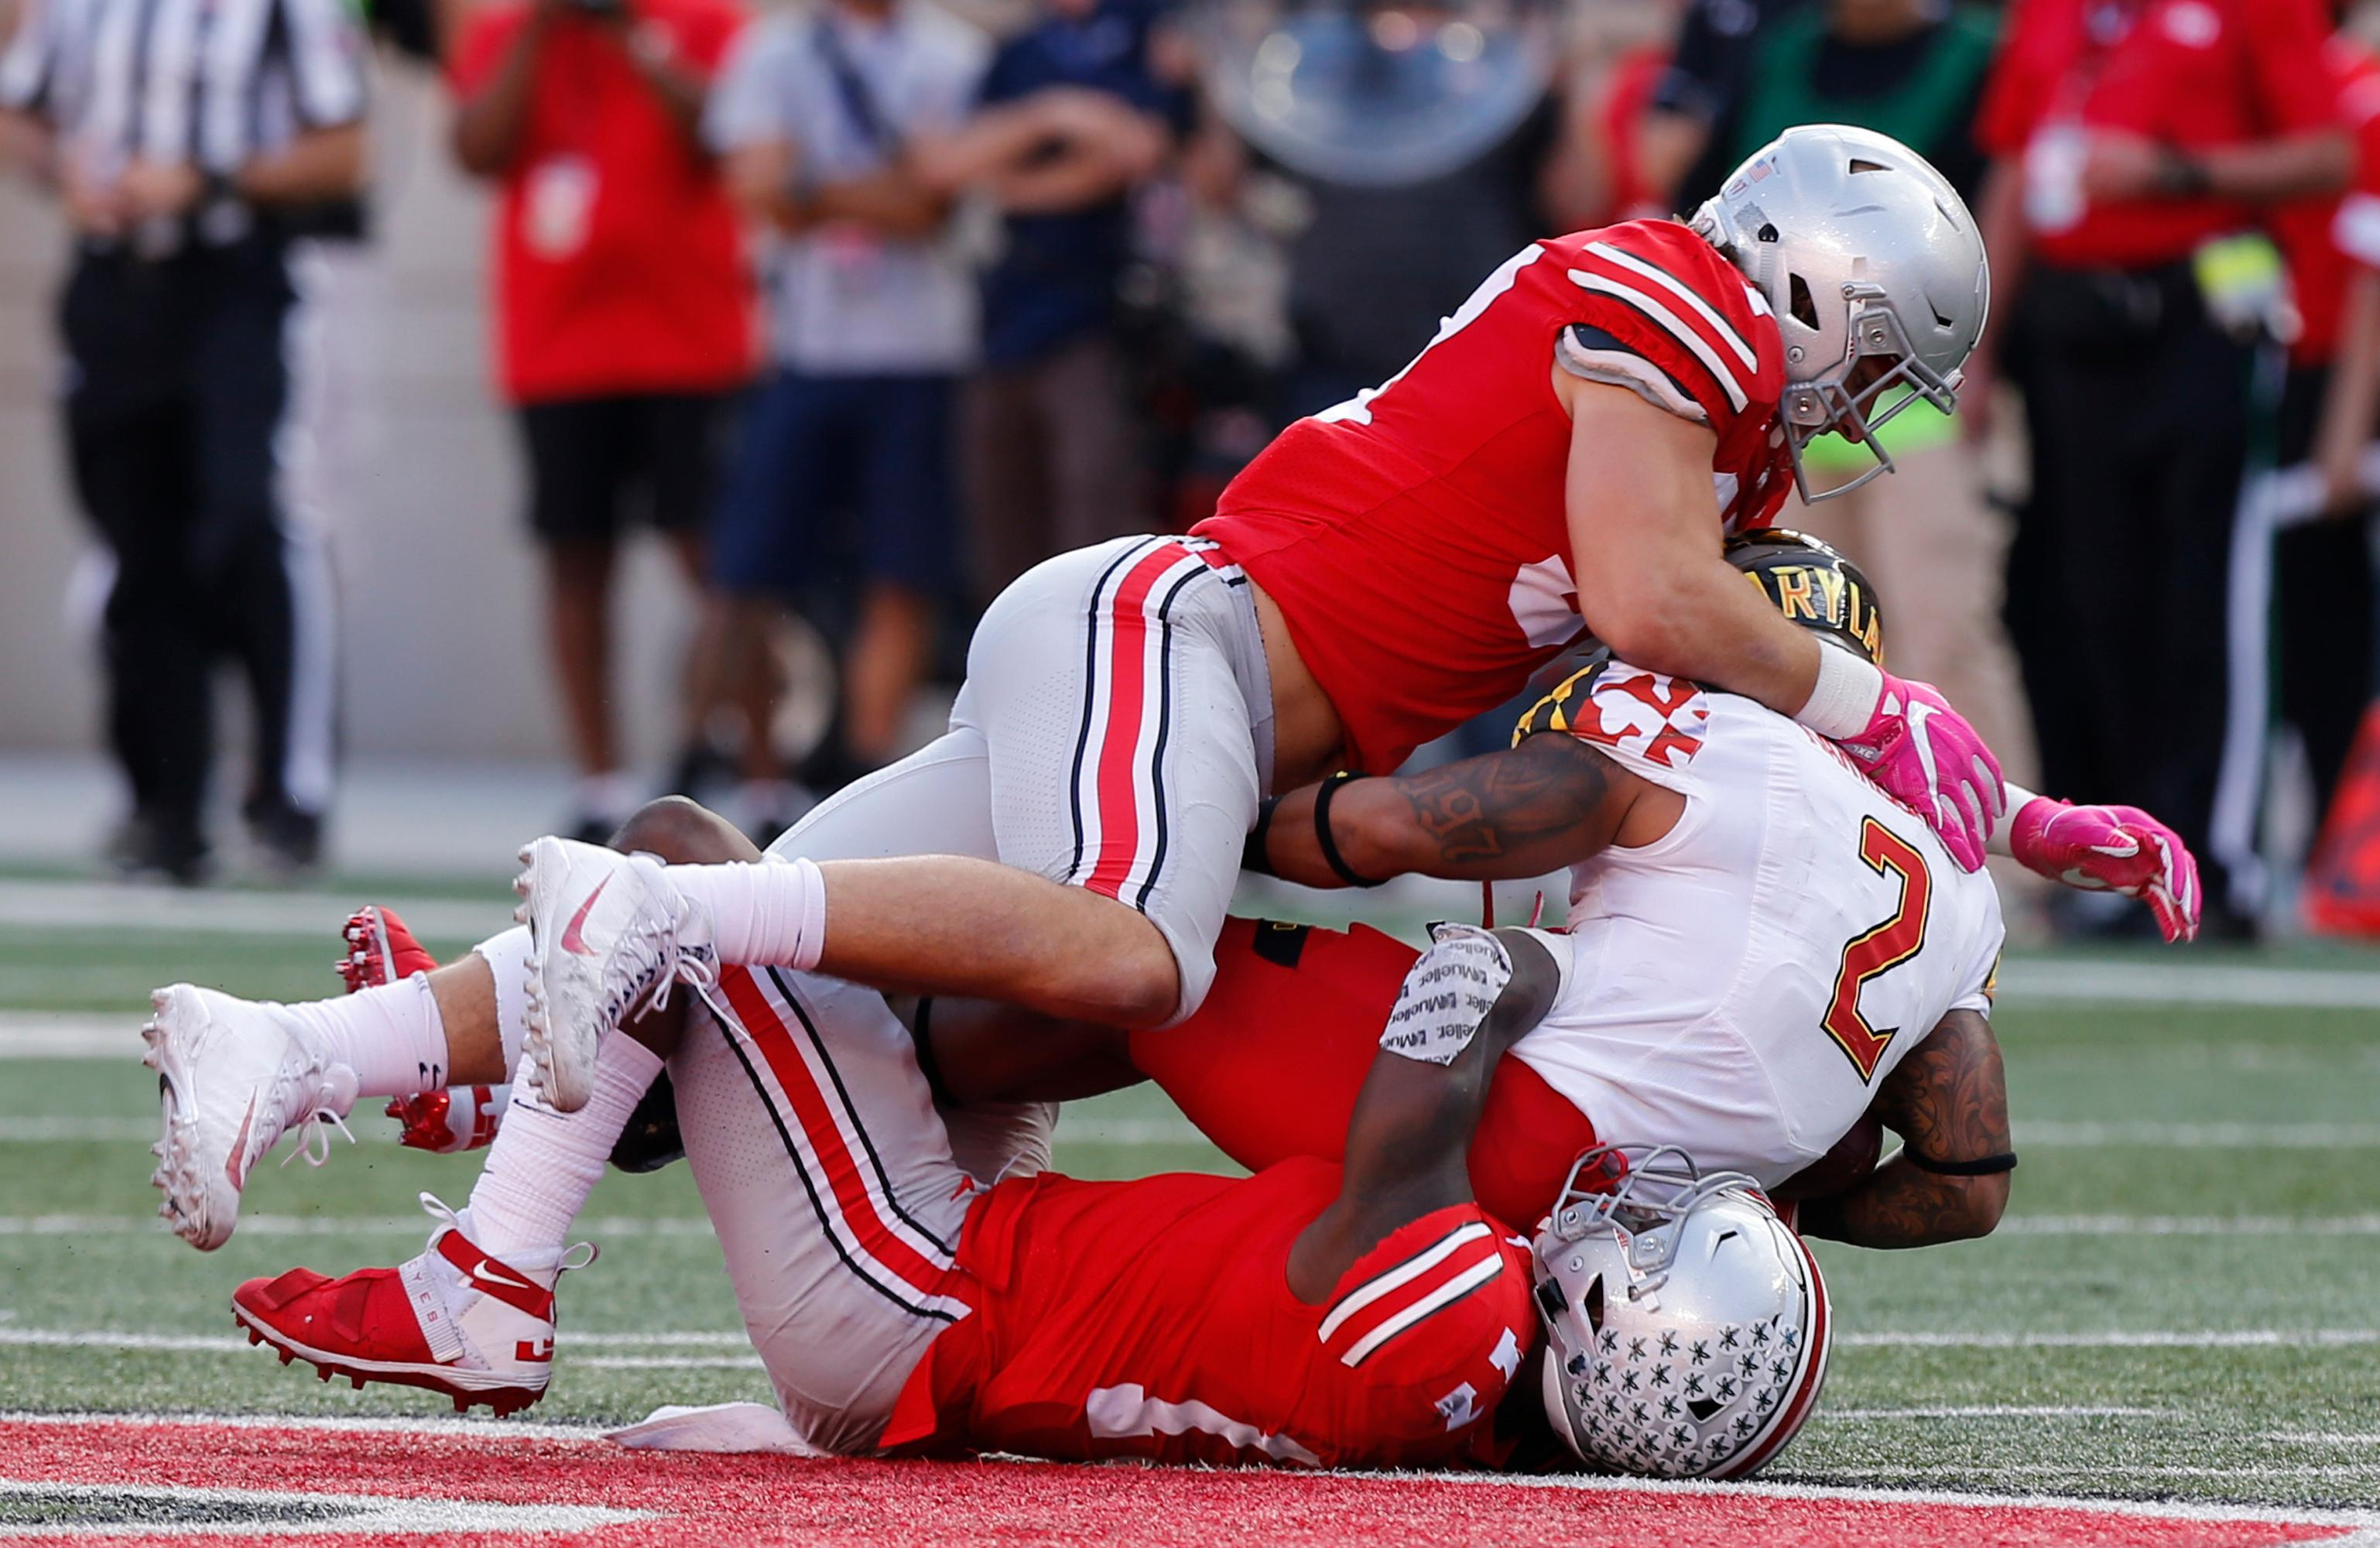 Ohio State defenders Nick Bosa, top, and Jerome Baker, bottom, tackle Maryland running back Lorenzo Harrison during the first half of an NCAA college football game Saturday, Oct. 7, 2017, in Columbus, Ohio. (AP Photo/Jay LaPrete)